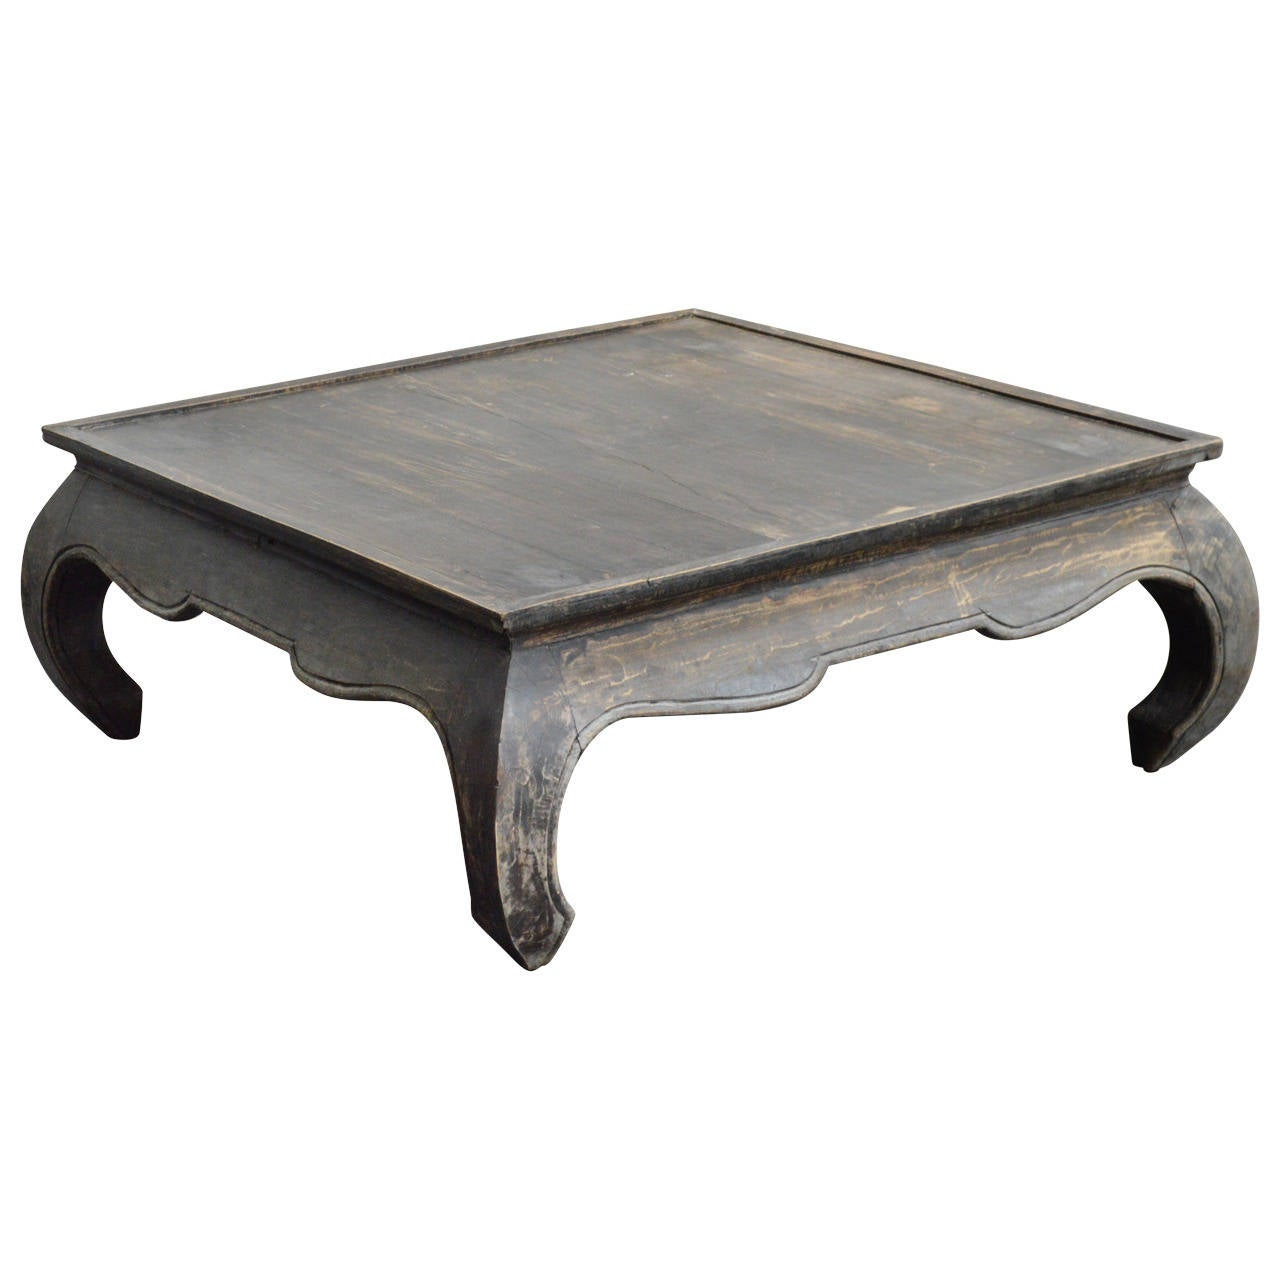 Vintage square opium leg coffee table at 1stdibs Coffee table antique